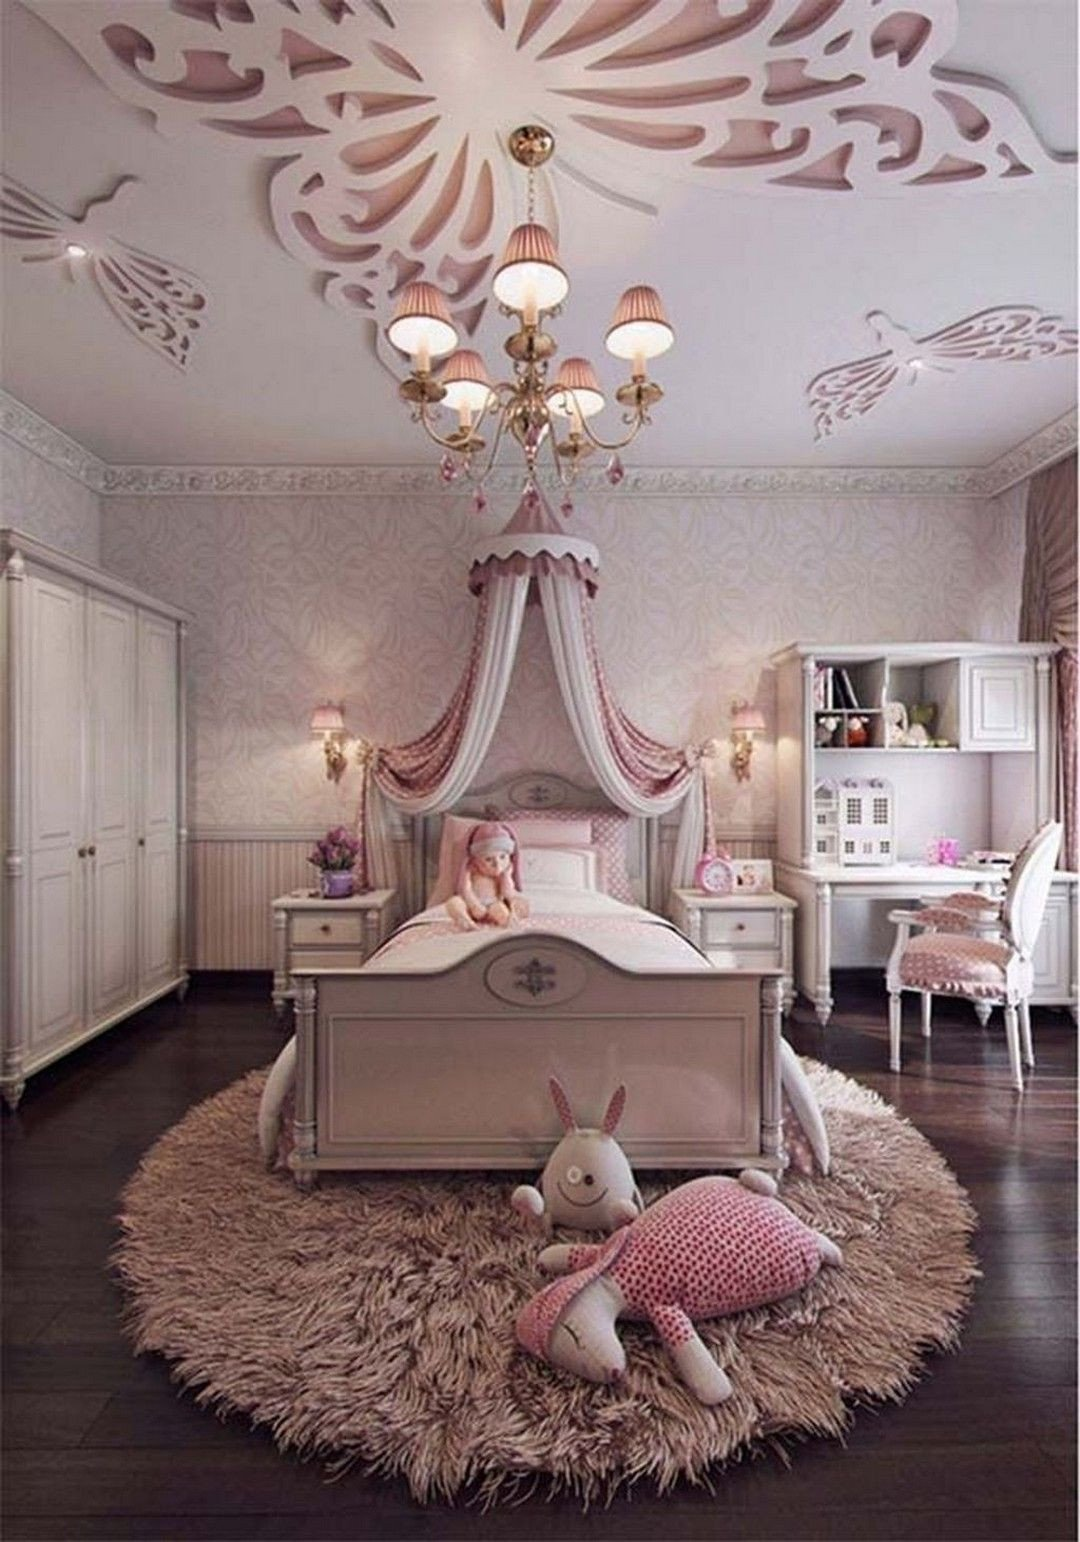 Little Girl Bedroom Decorating Ideas Awesome Pin by Roselle Musachia On Bedrm Dec In 2019